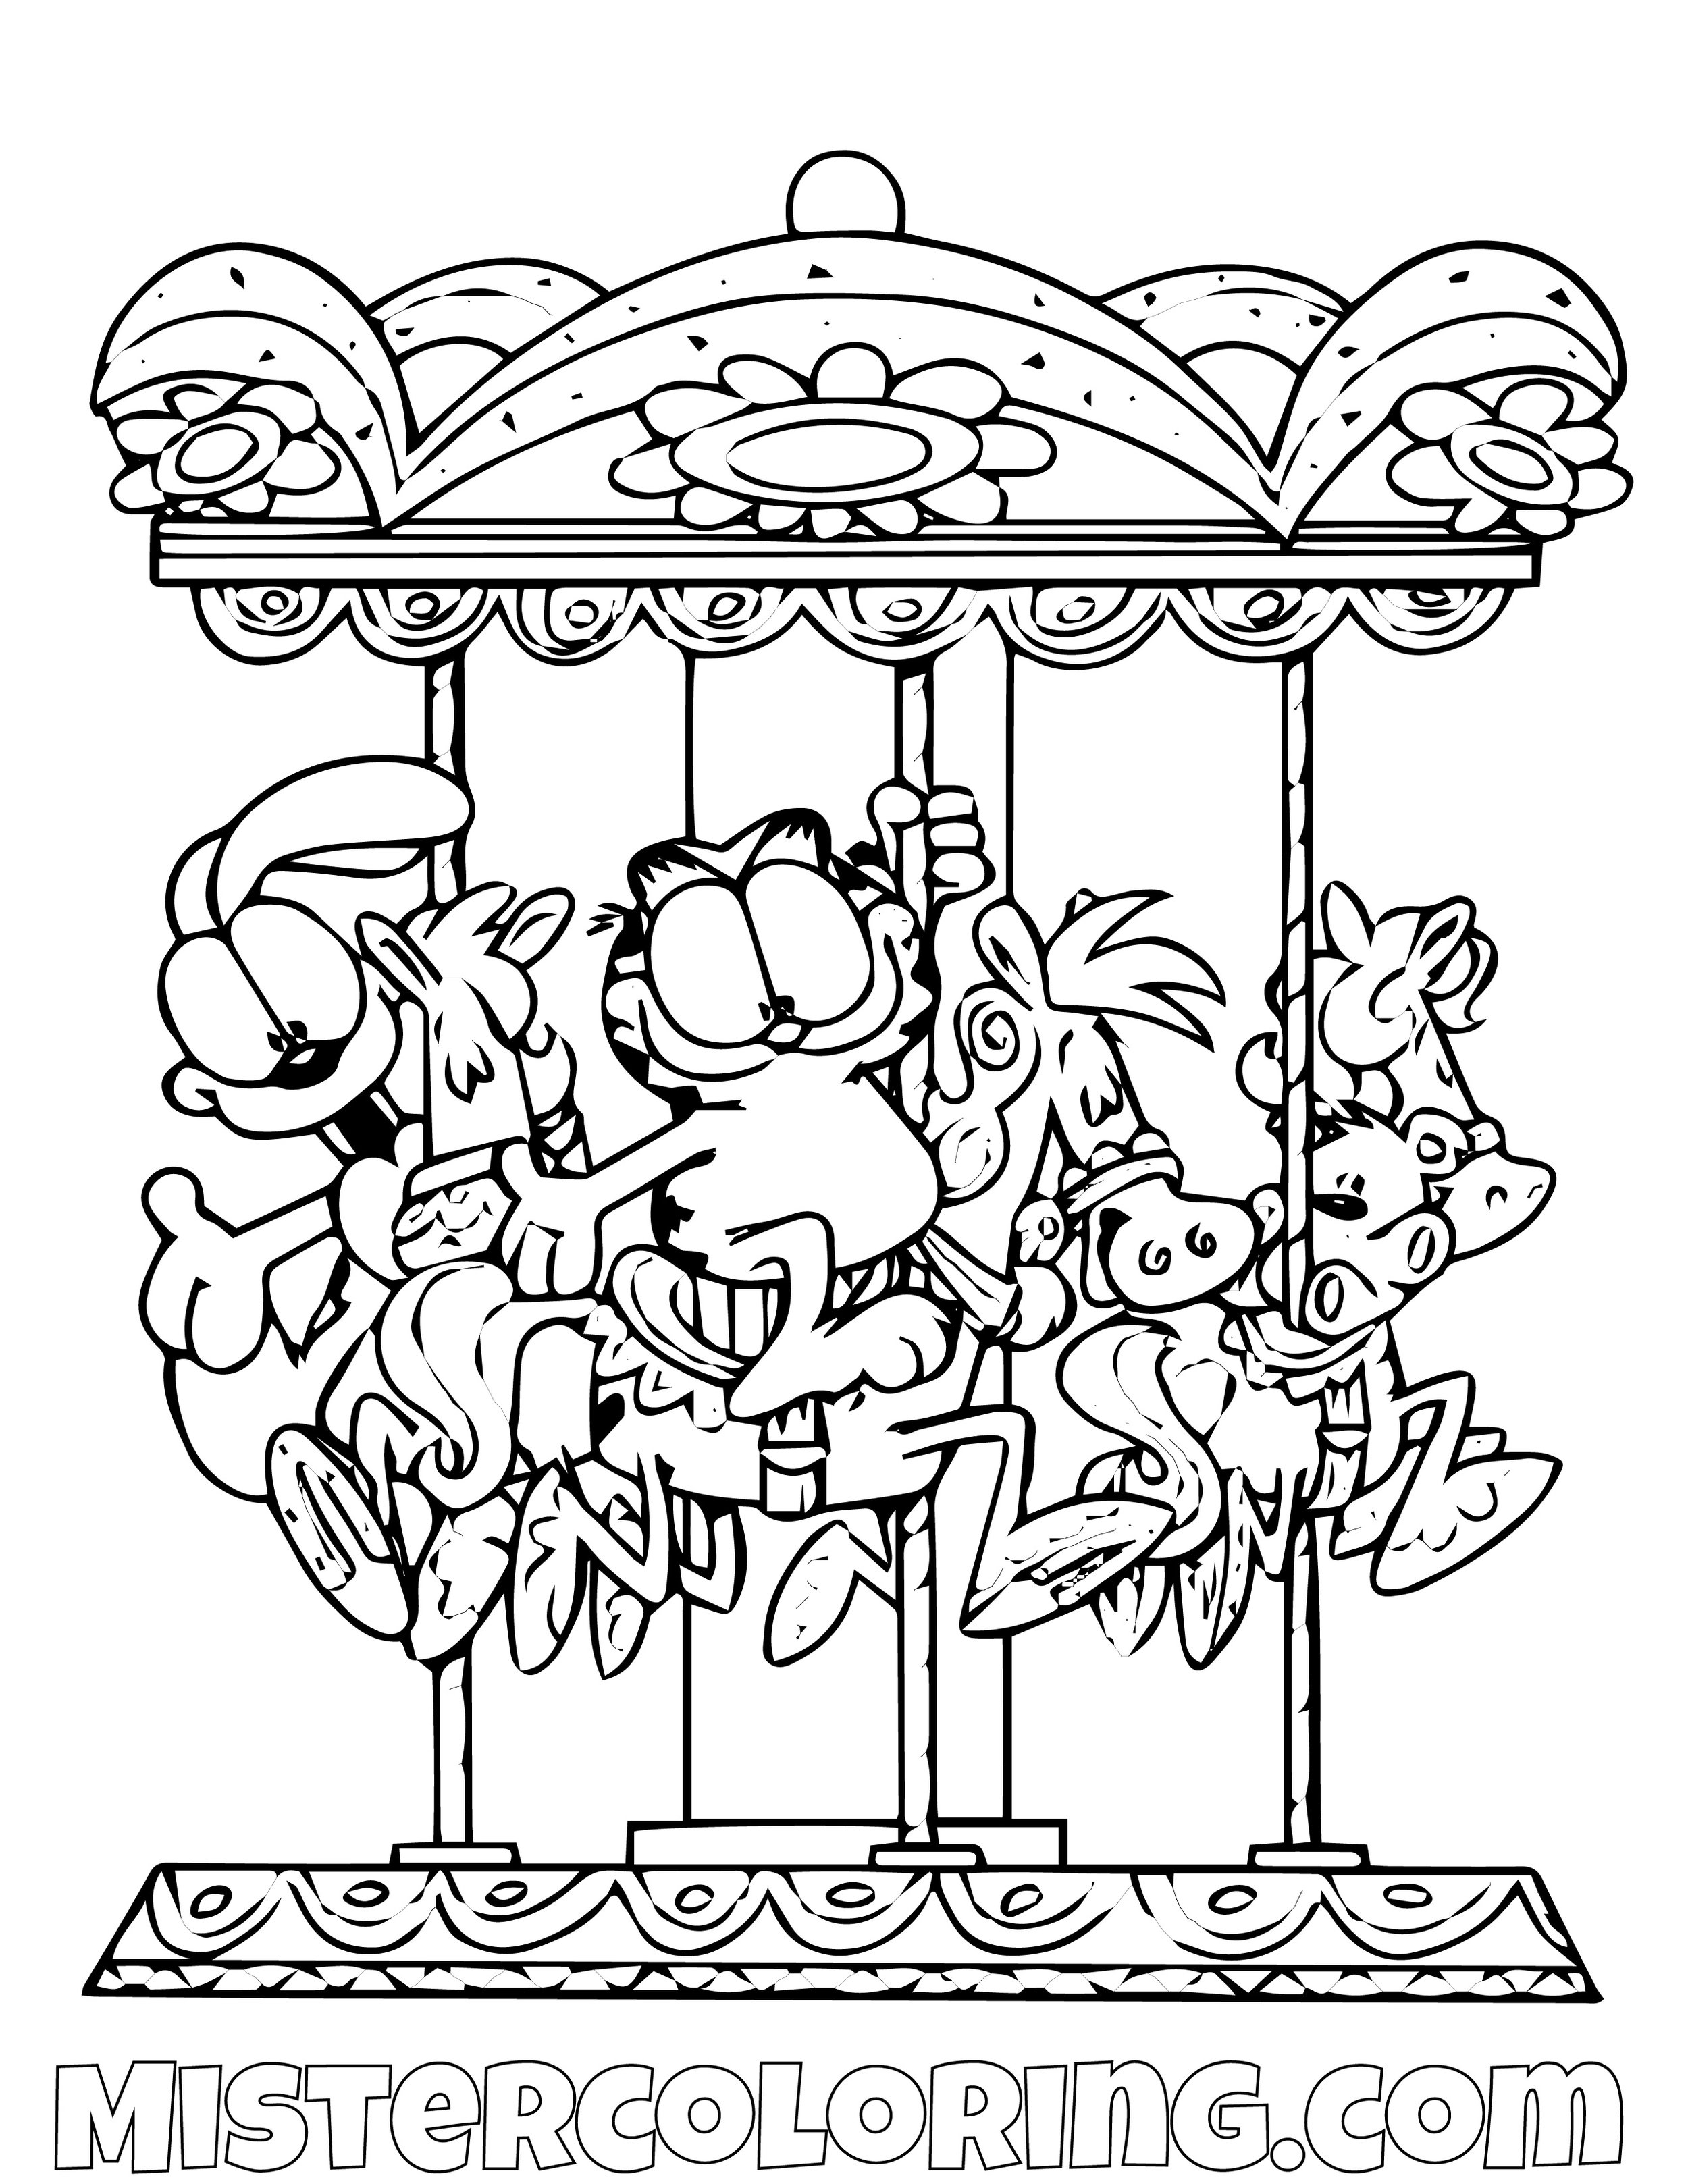 Garfield And Odie In A Carousel Coloring Page